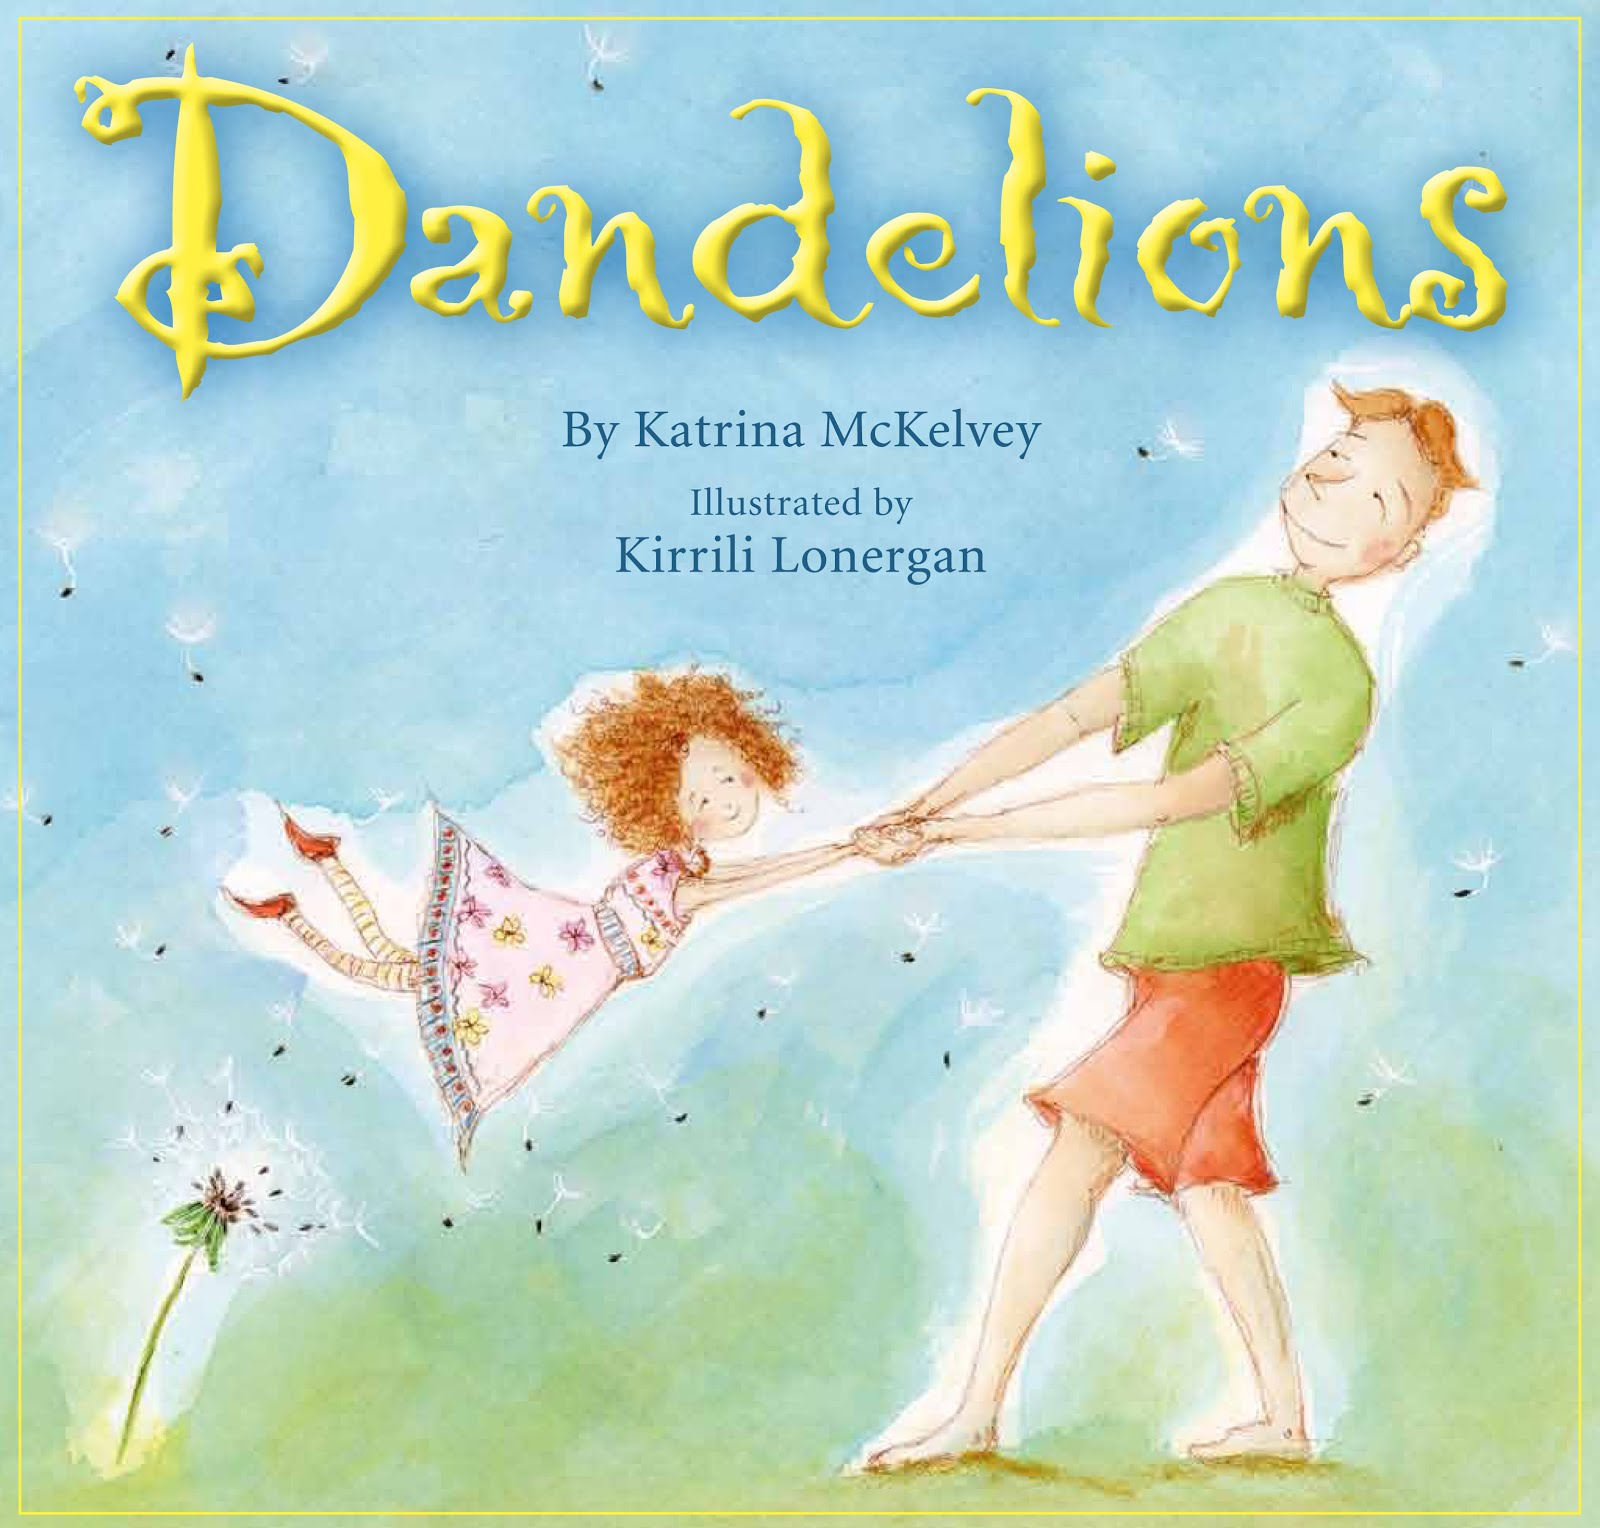 Dandelions by Katrina McKelvey and Kirrili Lonergan